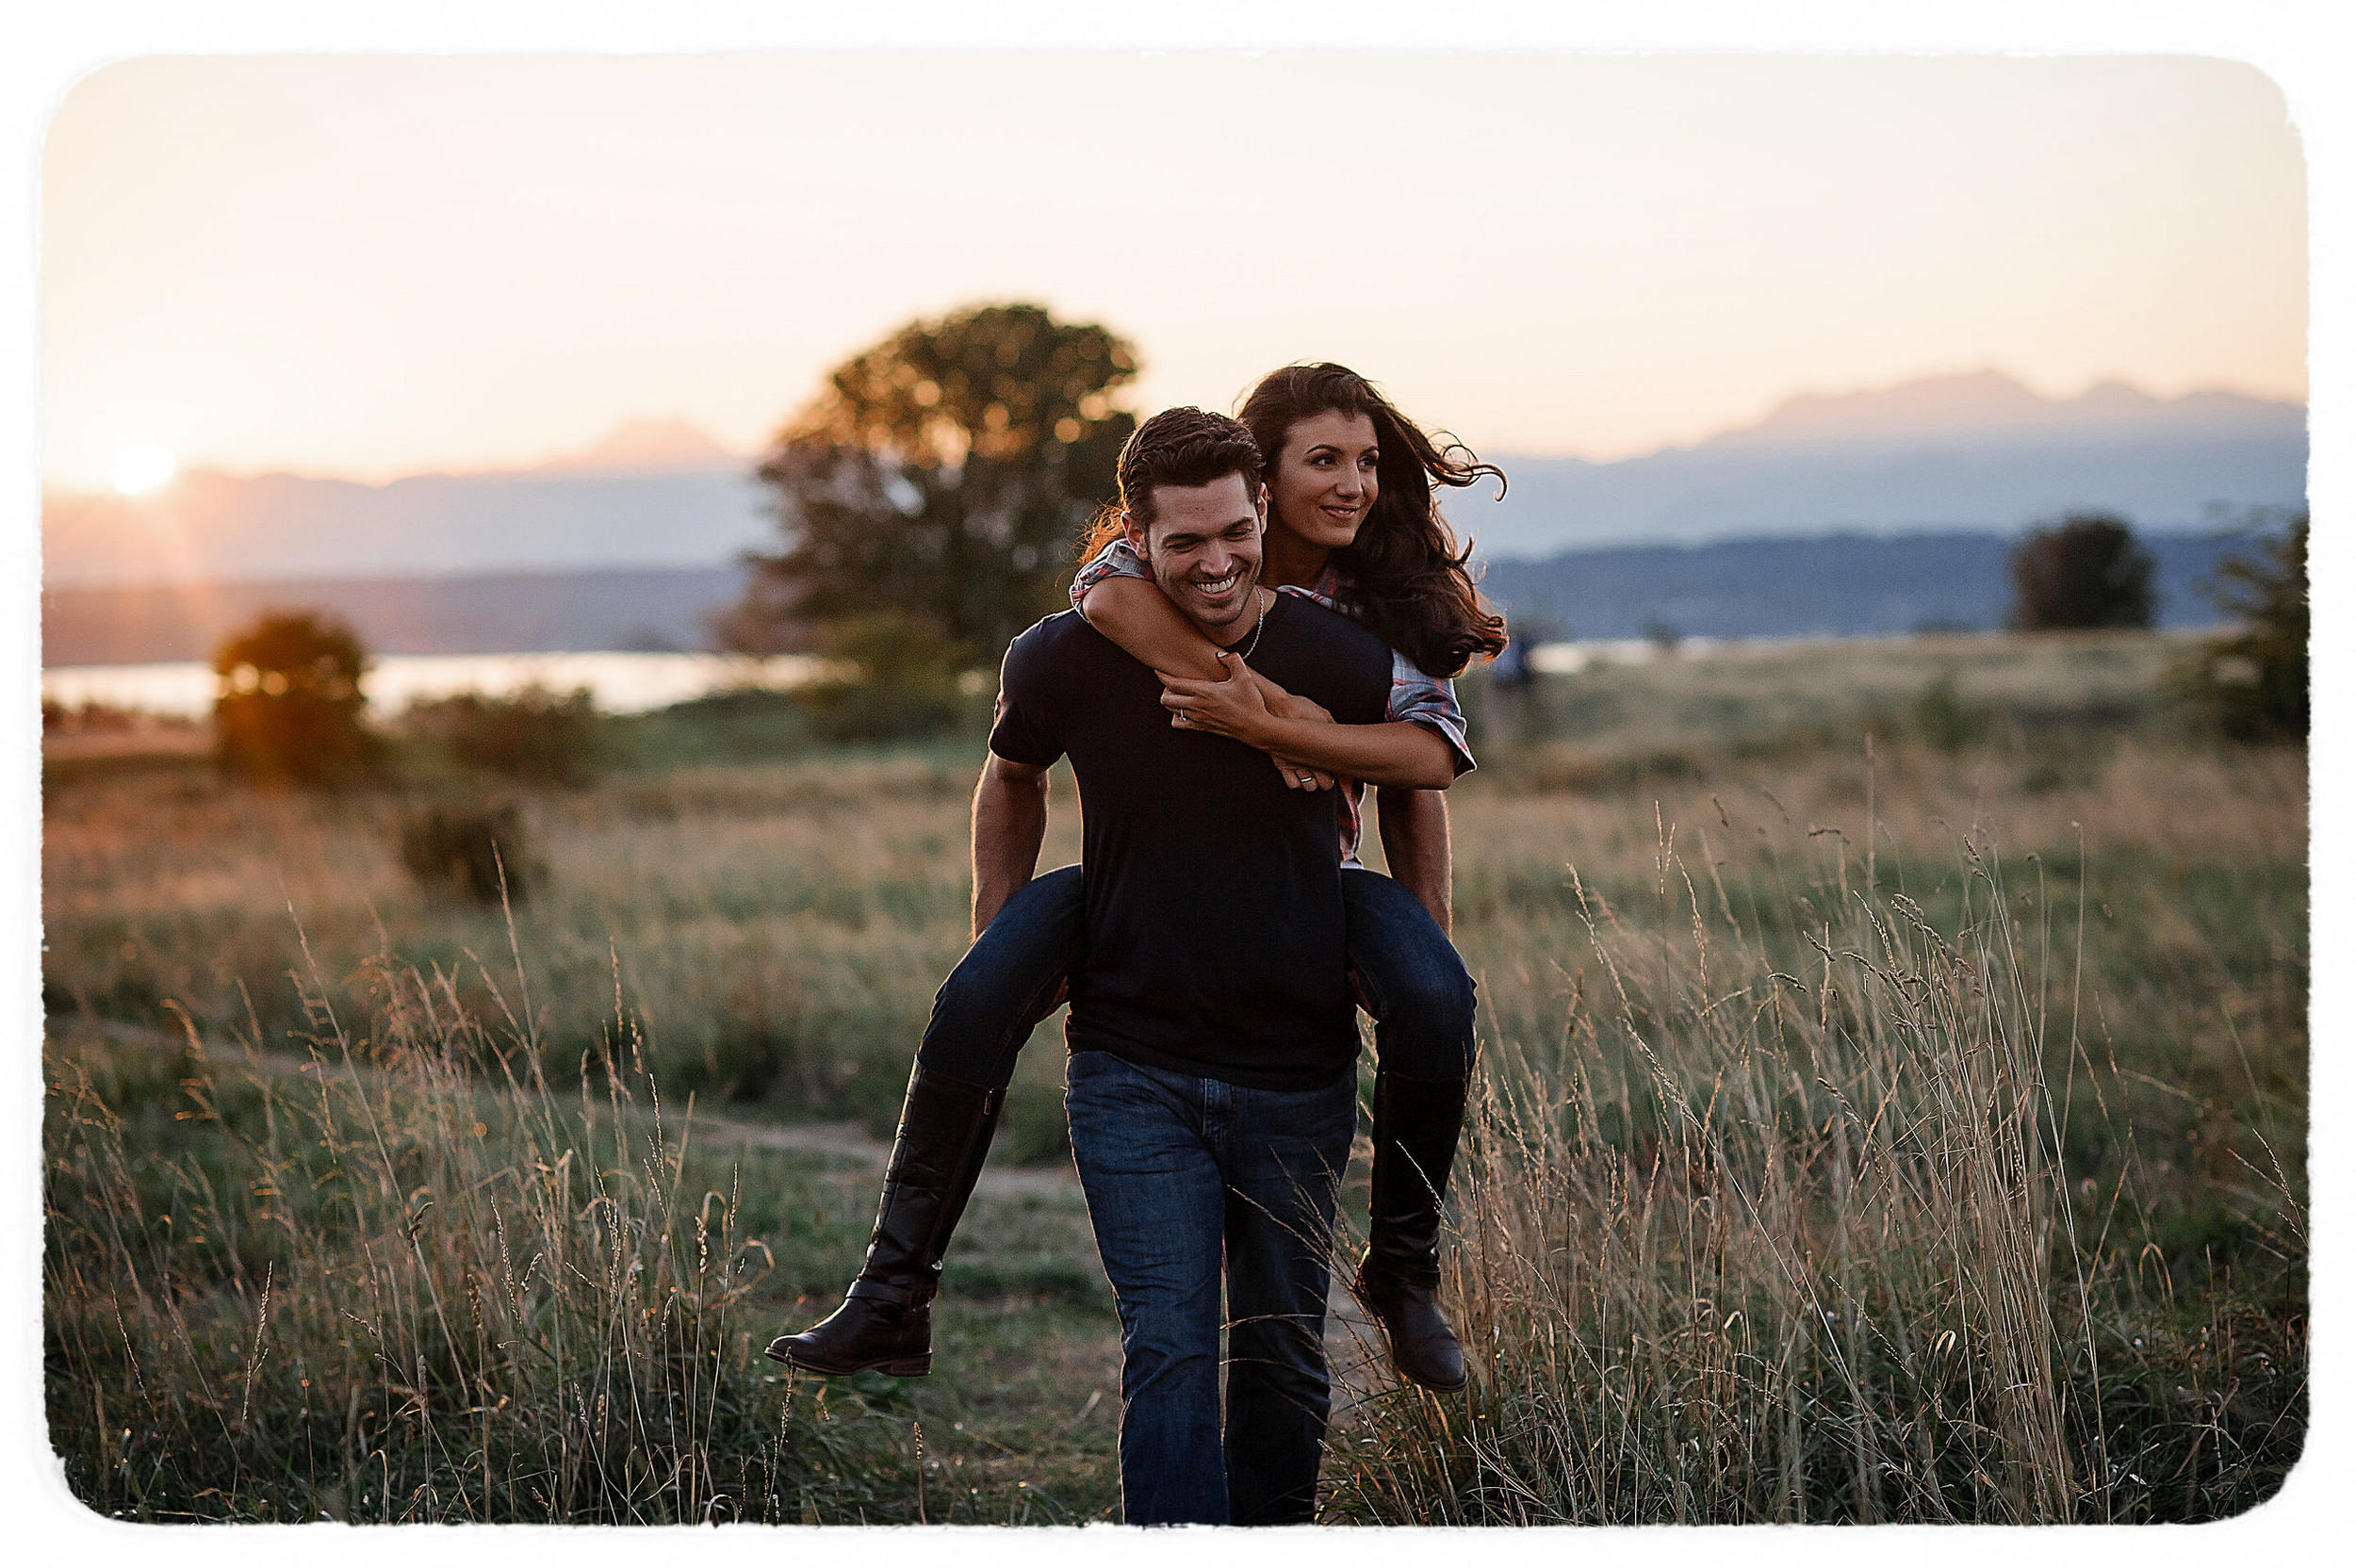 Kelly&Mike-EngagementSession-OriginalCollection-166Film.jpg